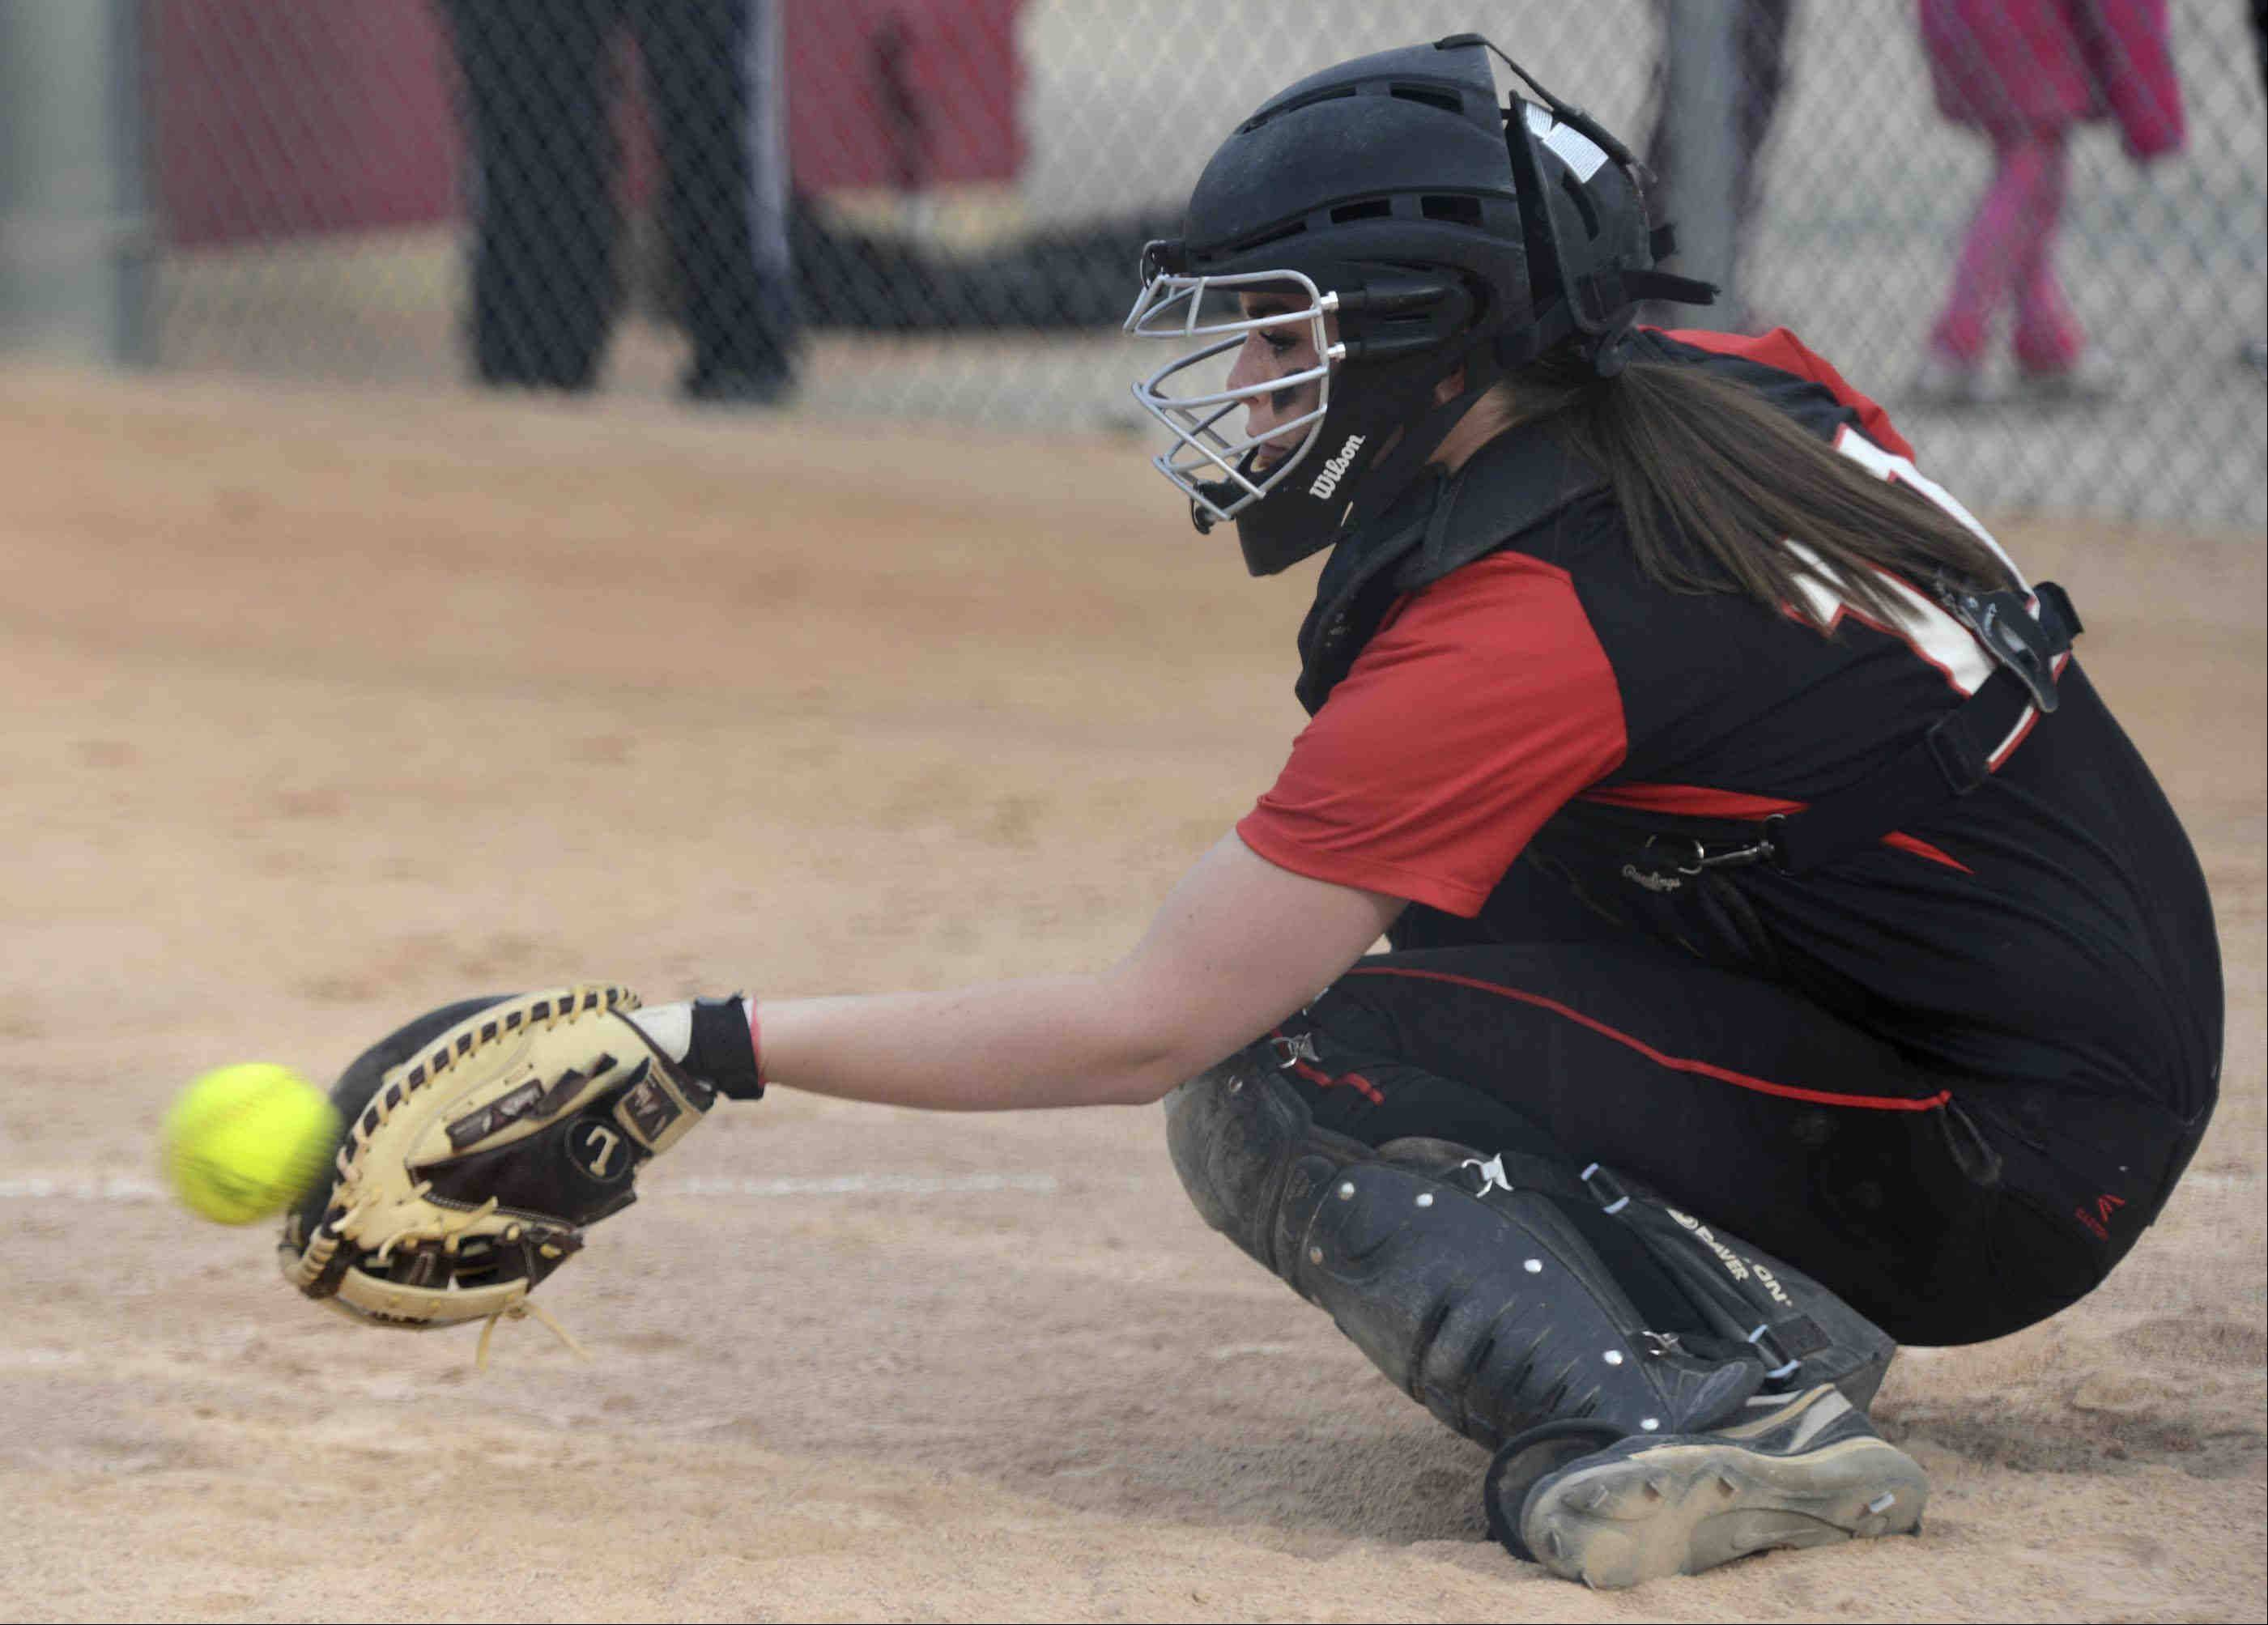 Barrington catcher Raegan Fingerman takes a pitch from Keenan Dolezal against Fremd on Monday at the Fields of Dreams.